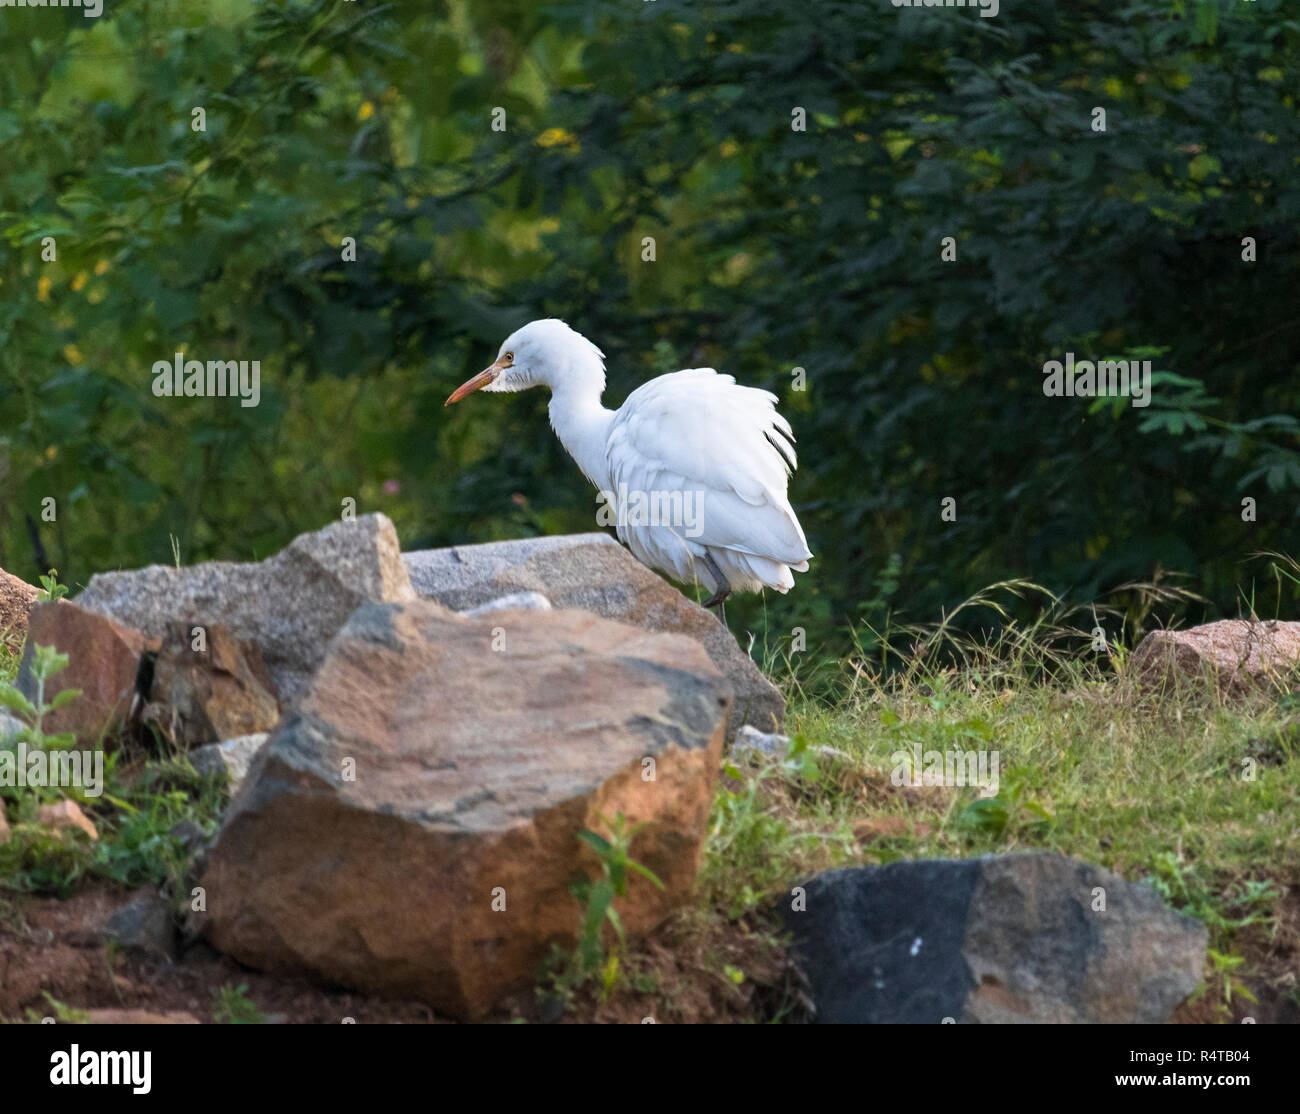 A Little Egret is seen in search of food in a sunny morning. - Stock Image